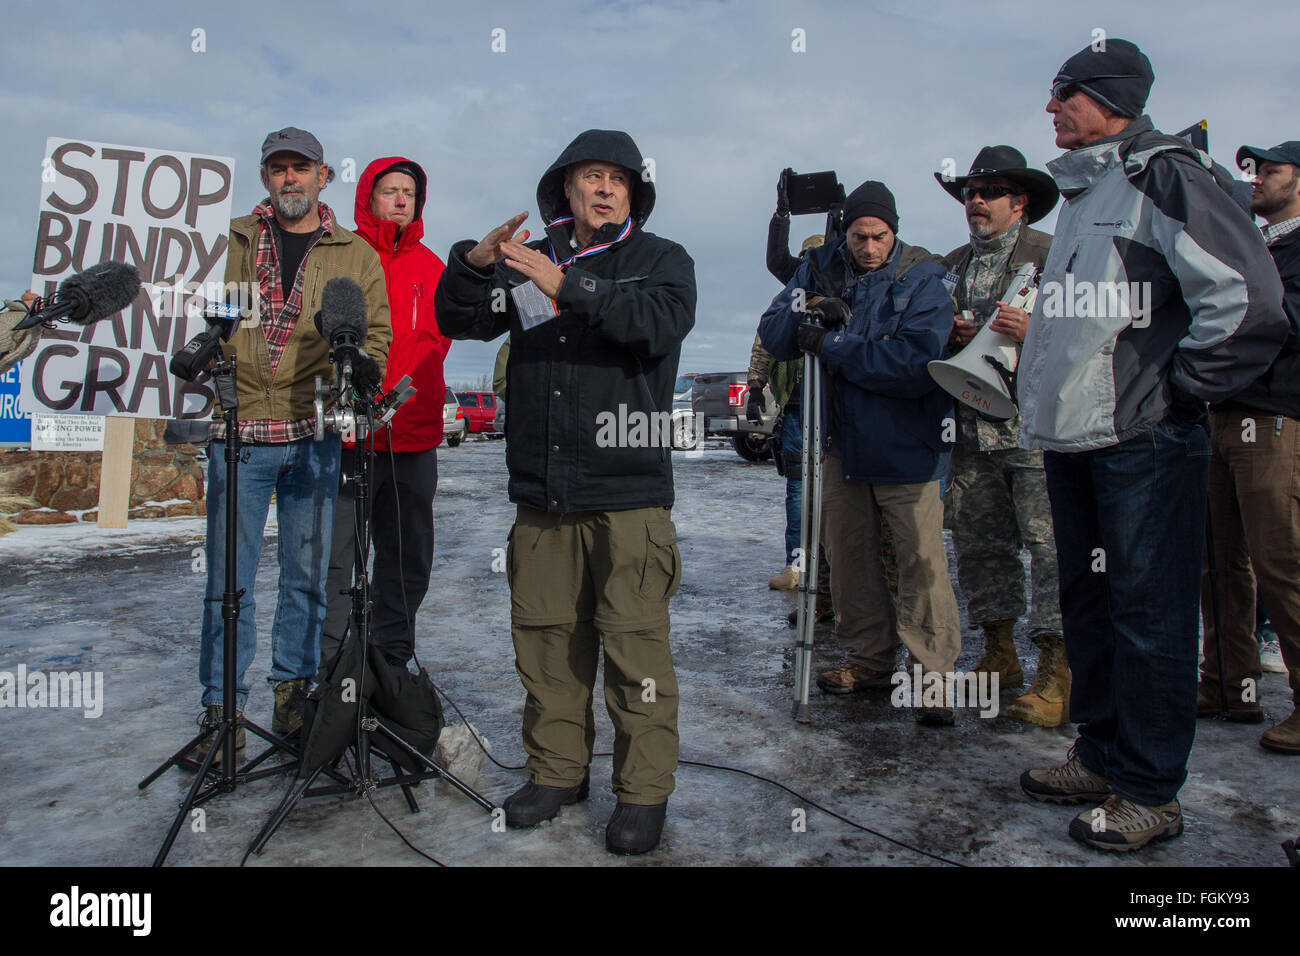 Joaquin Mariano Moreta Folch attempts to mediate during a confrontation between Center for Biological Diversity - Stock Image